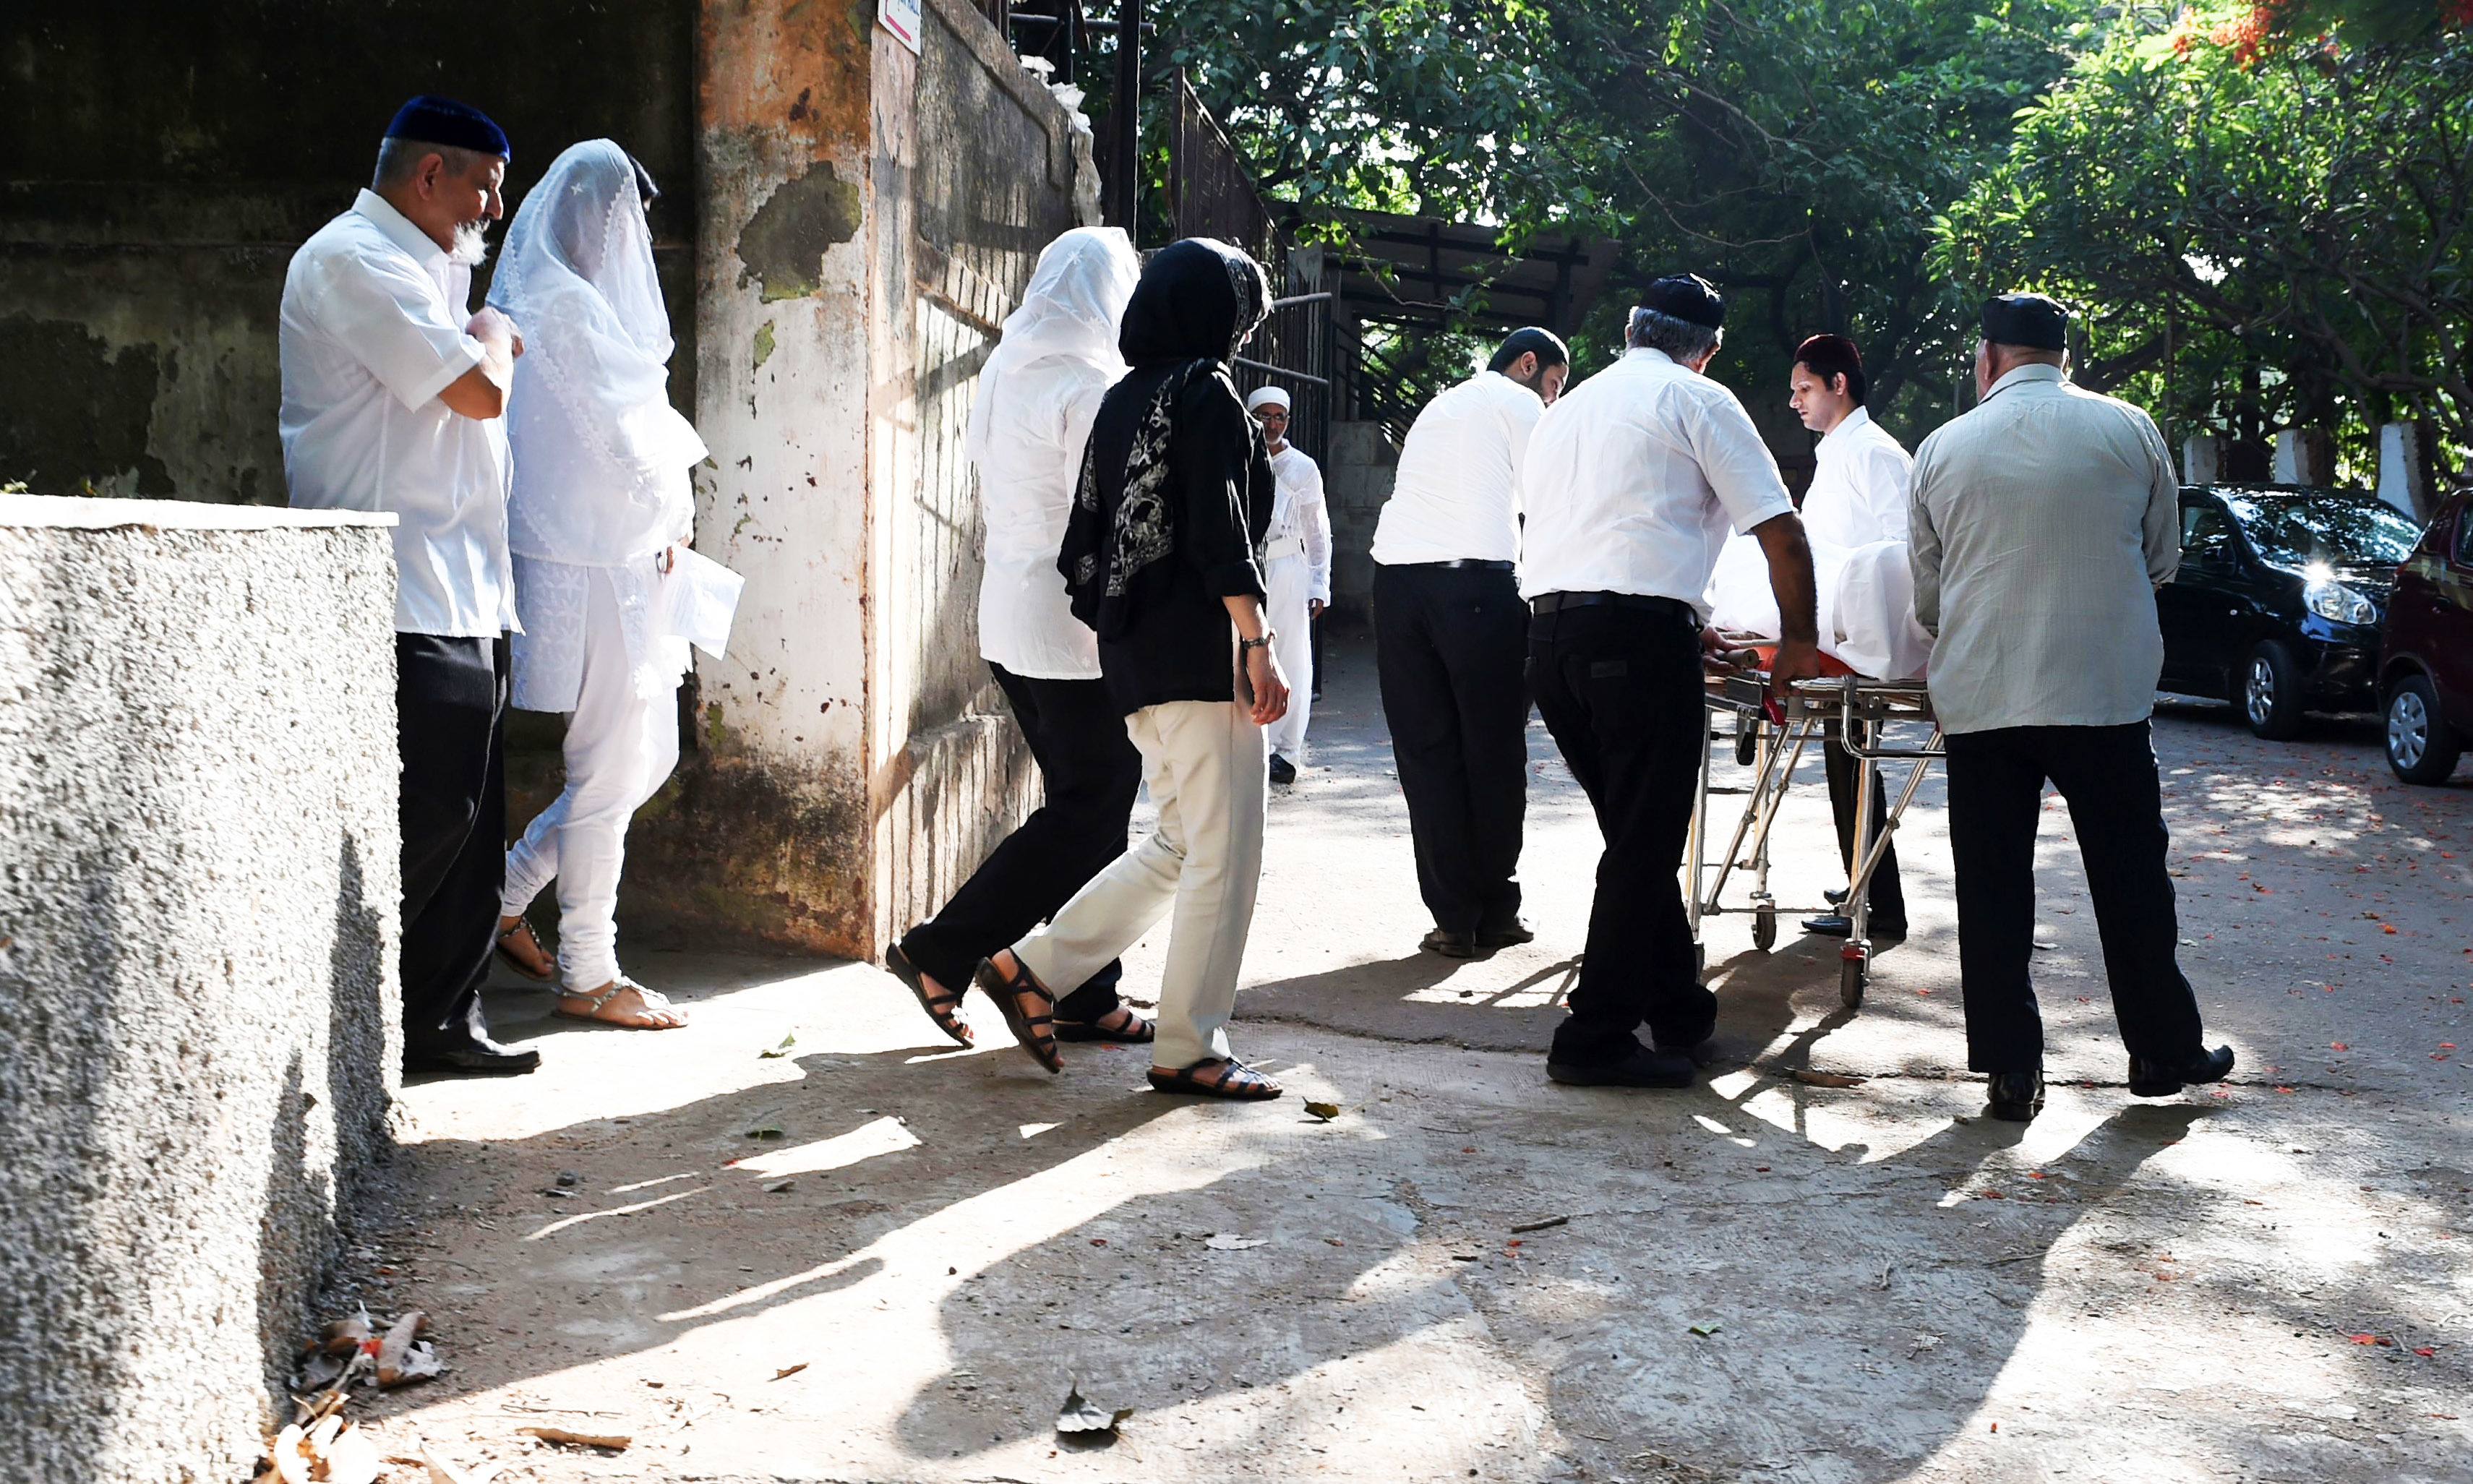 In this photo taken on May 10, 2016, friends and family members take part in a funeral procession of a member of the Parsi community at a prayer hall in Mumbai.